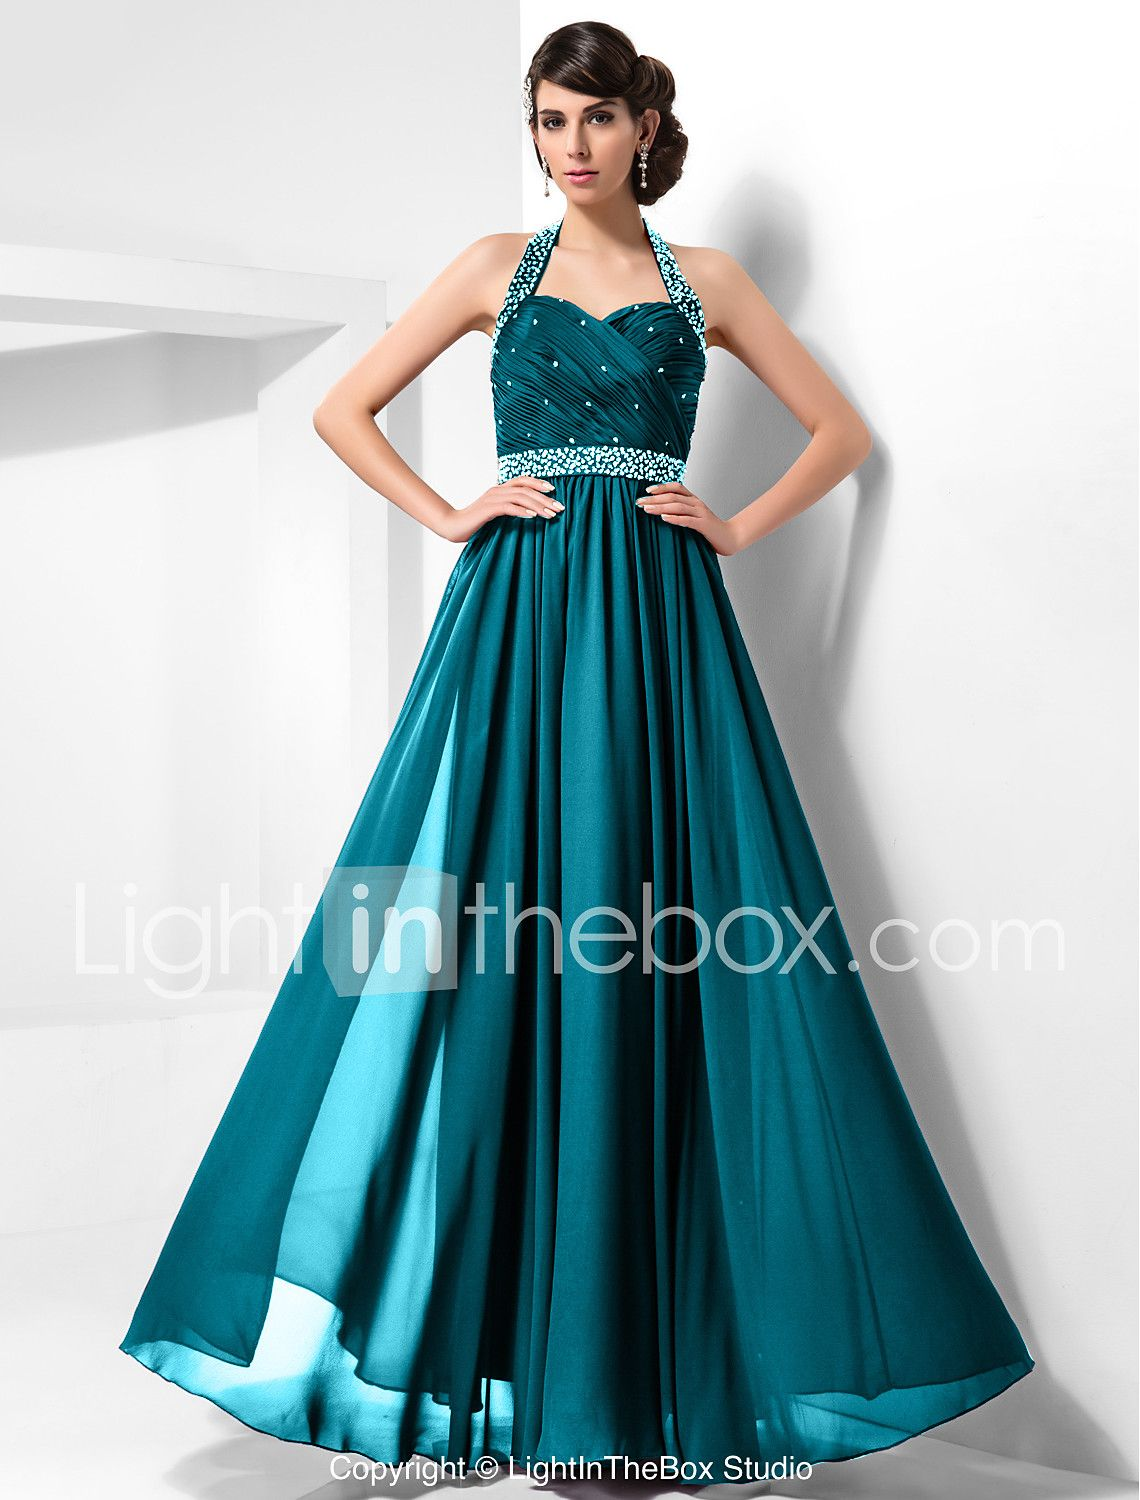 I like this. Do you think I should buy it? | jos prom | Pinterest ...